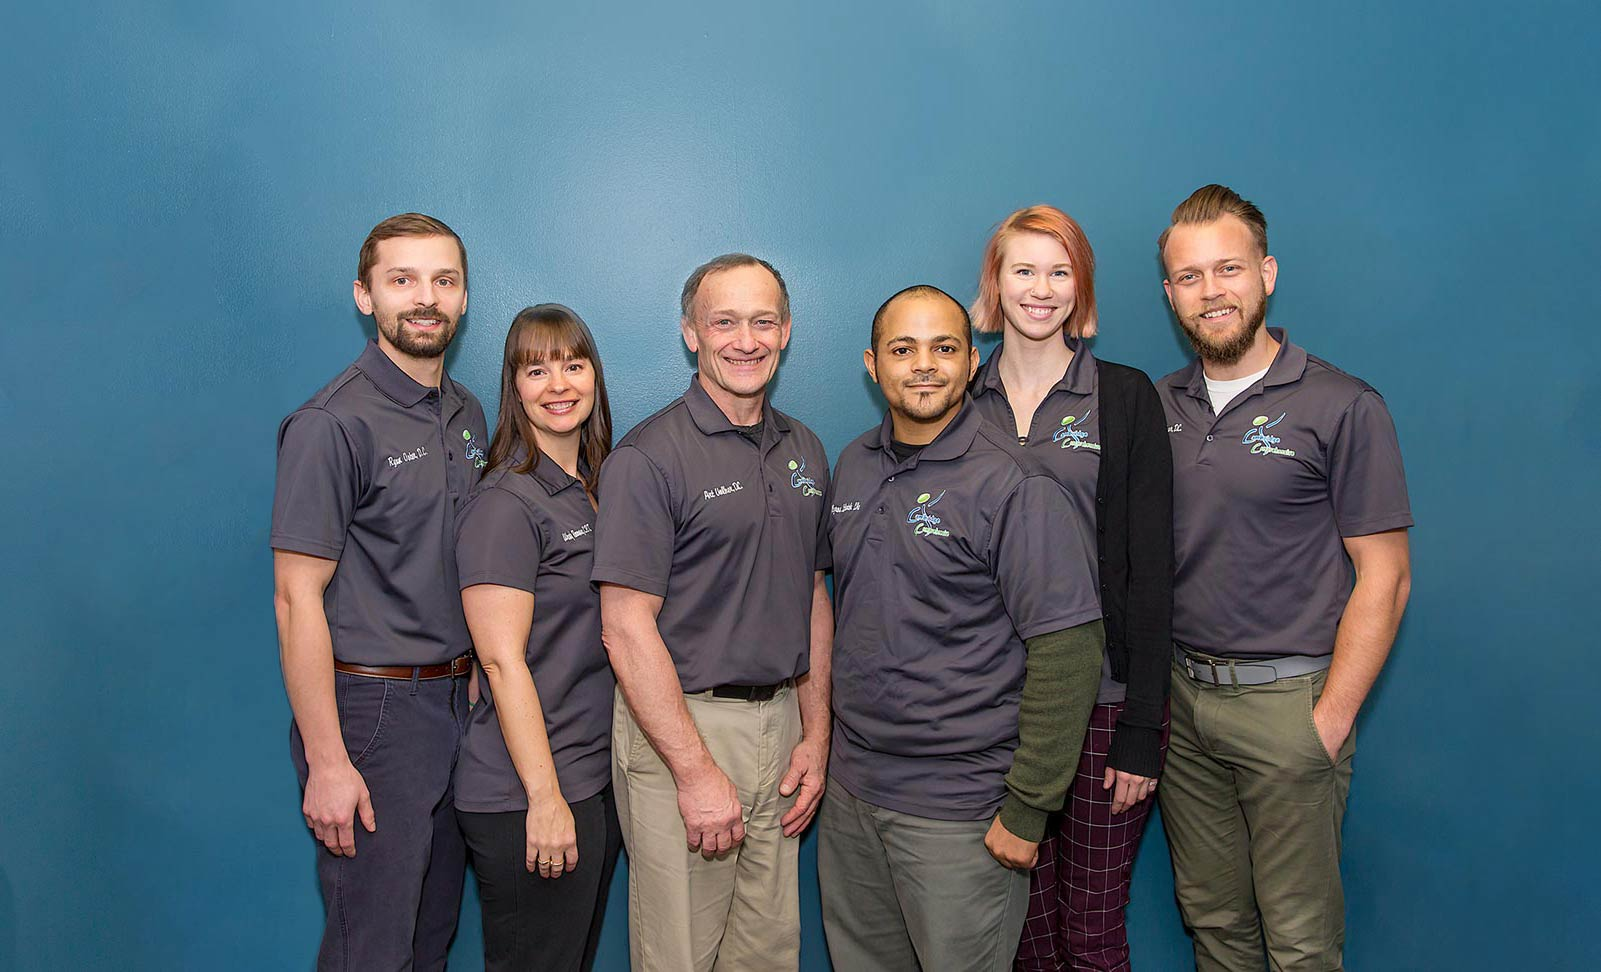 Chiropractor Cambridge MN Arthur Volker Kyle Volker, Ryan Oster and Staff